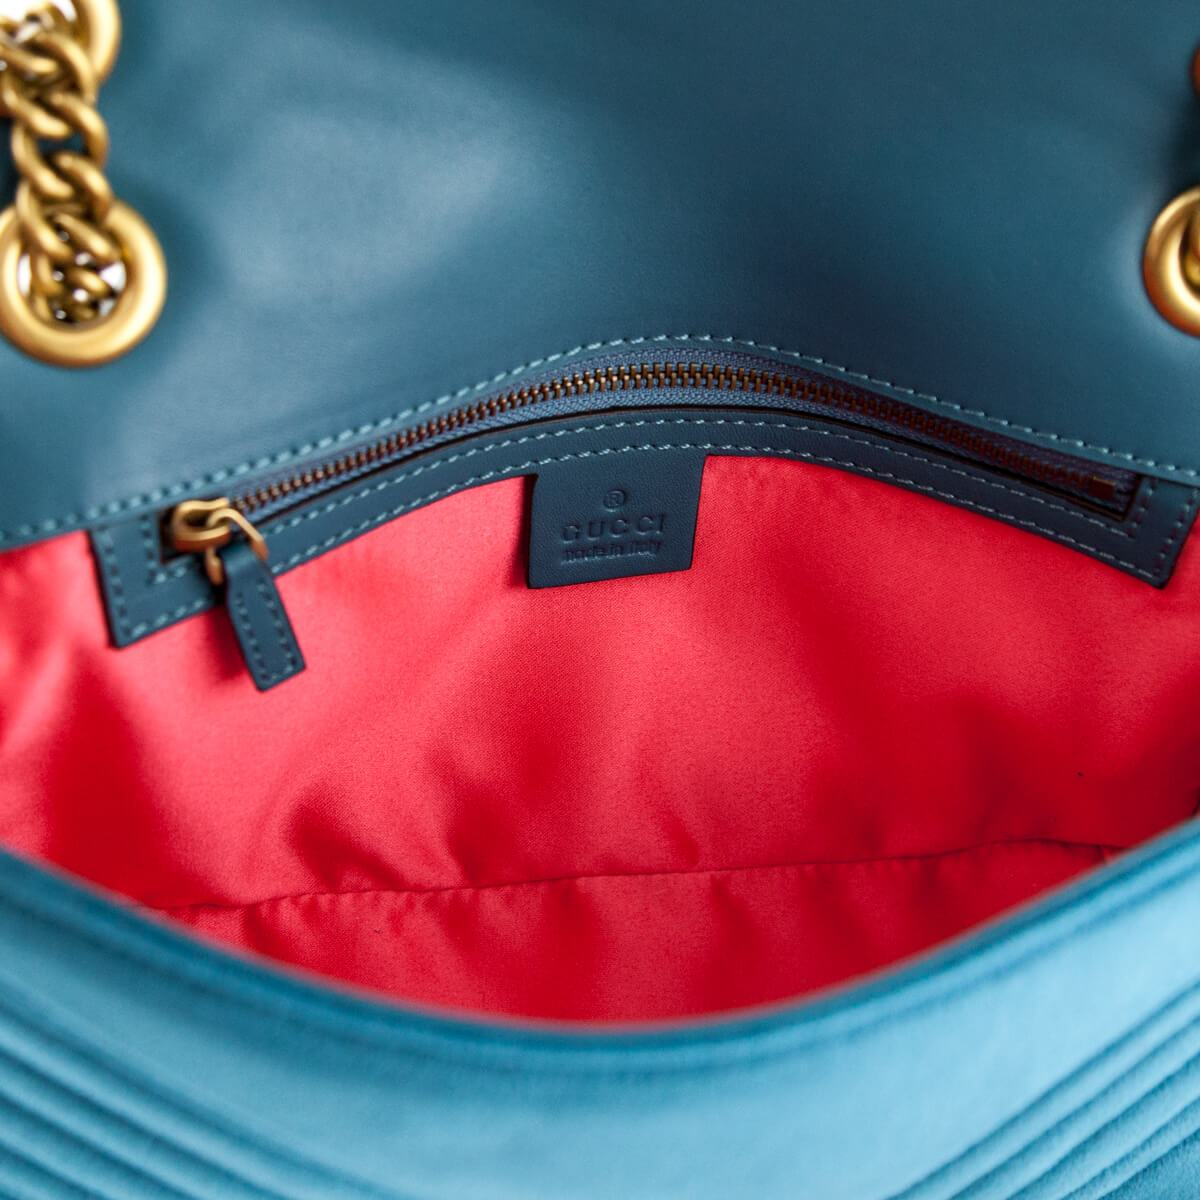 dfd3a559951f67 ... Load image into Gallery viewer, Gucci Petrol Blue Velvet Small GG  Marmont Shoulder Bag ...